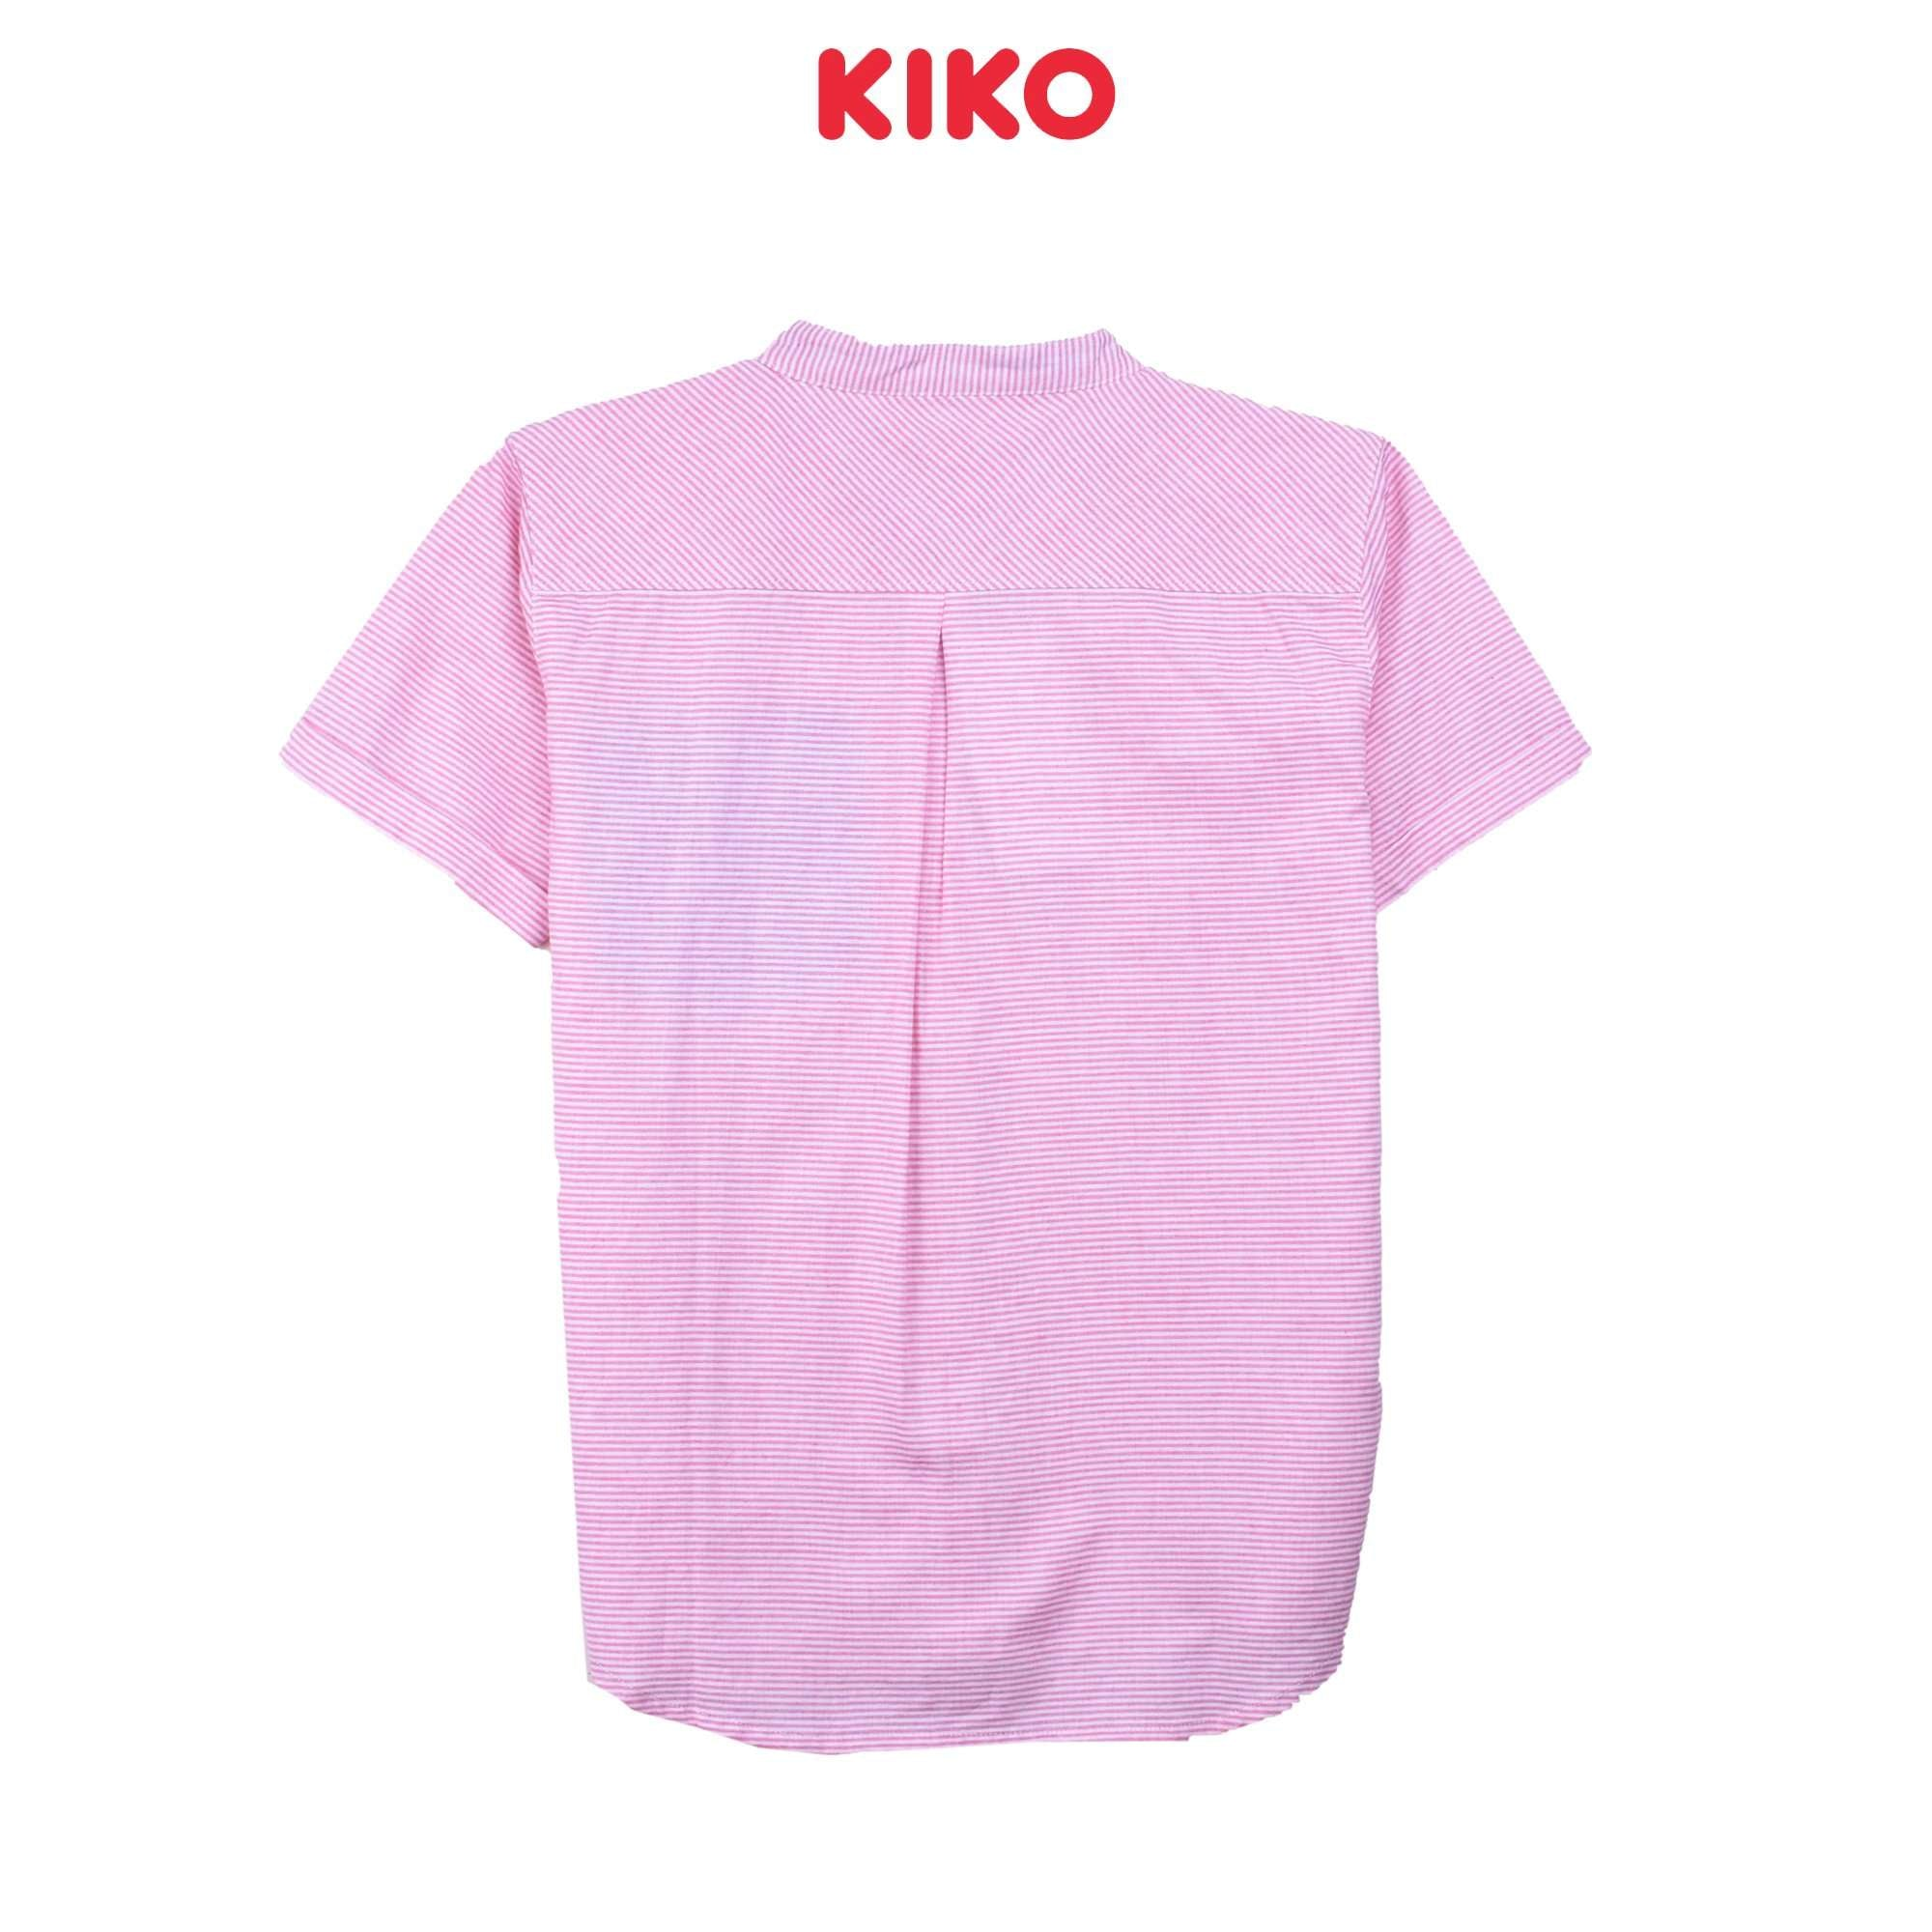 KIKO Boy Short Sleeve Shirt K912001-1424-R5 : Buy KIKO online at CMG.MY